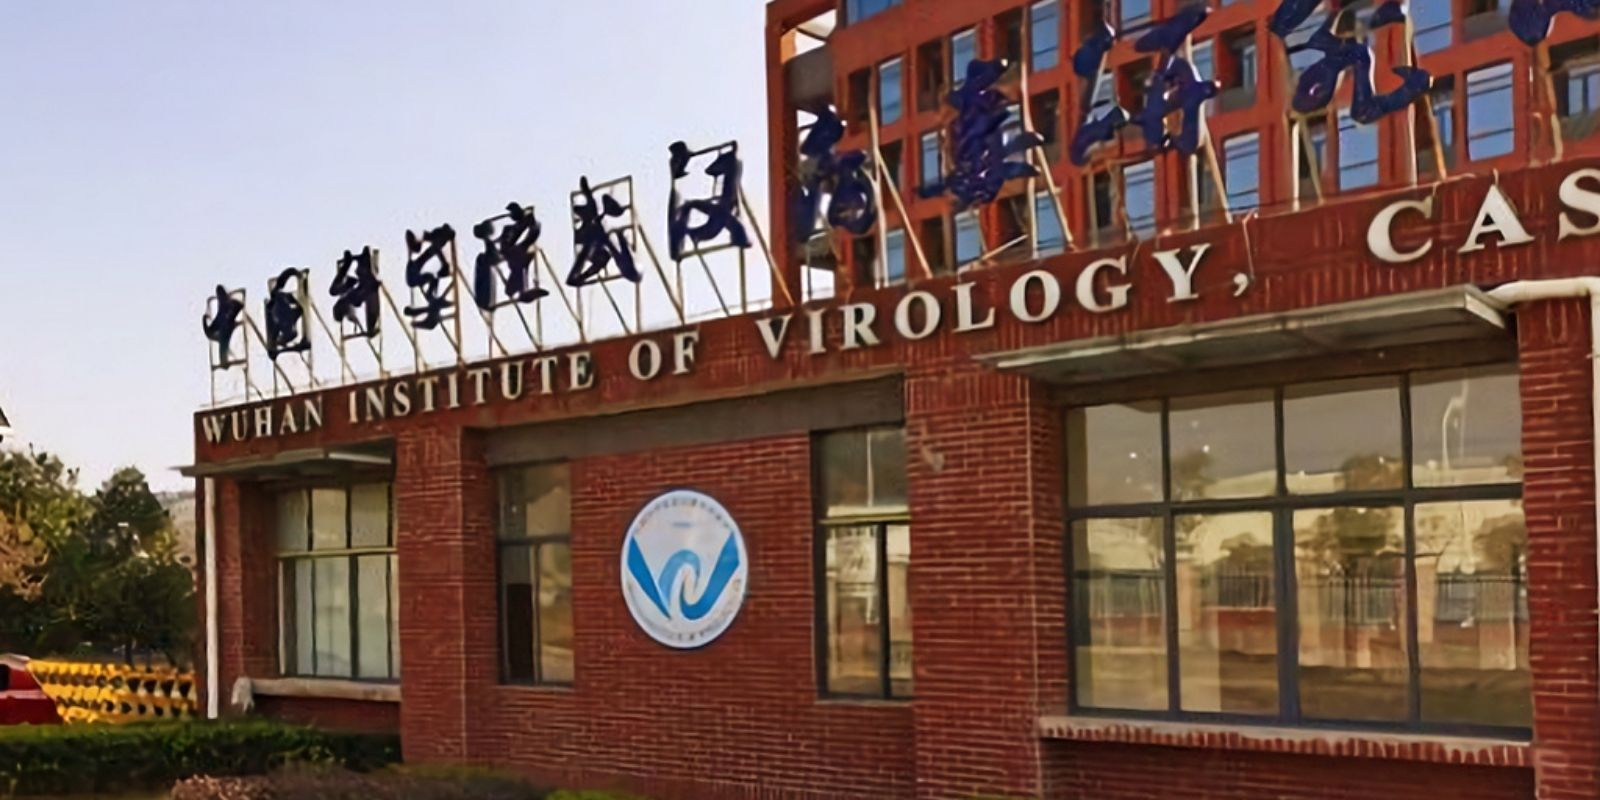 China to build over two dozen bio labs like Wuhan Institute in next 5 years